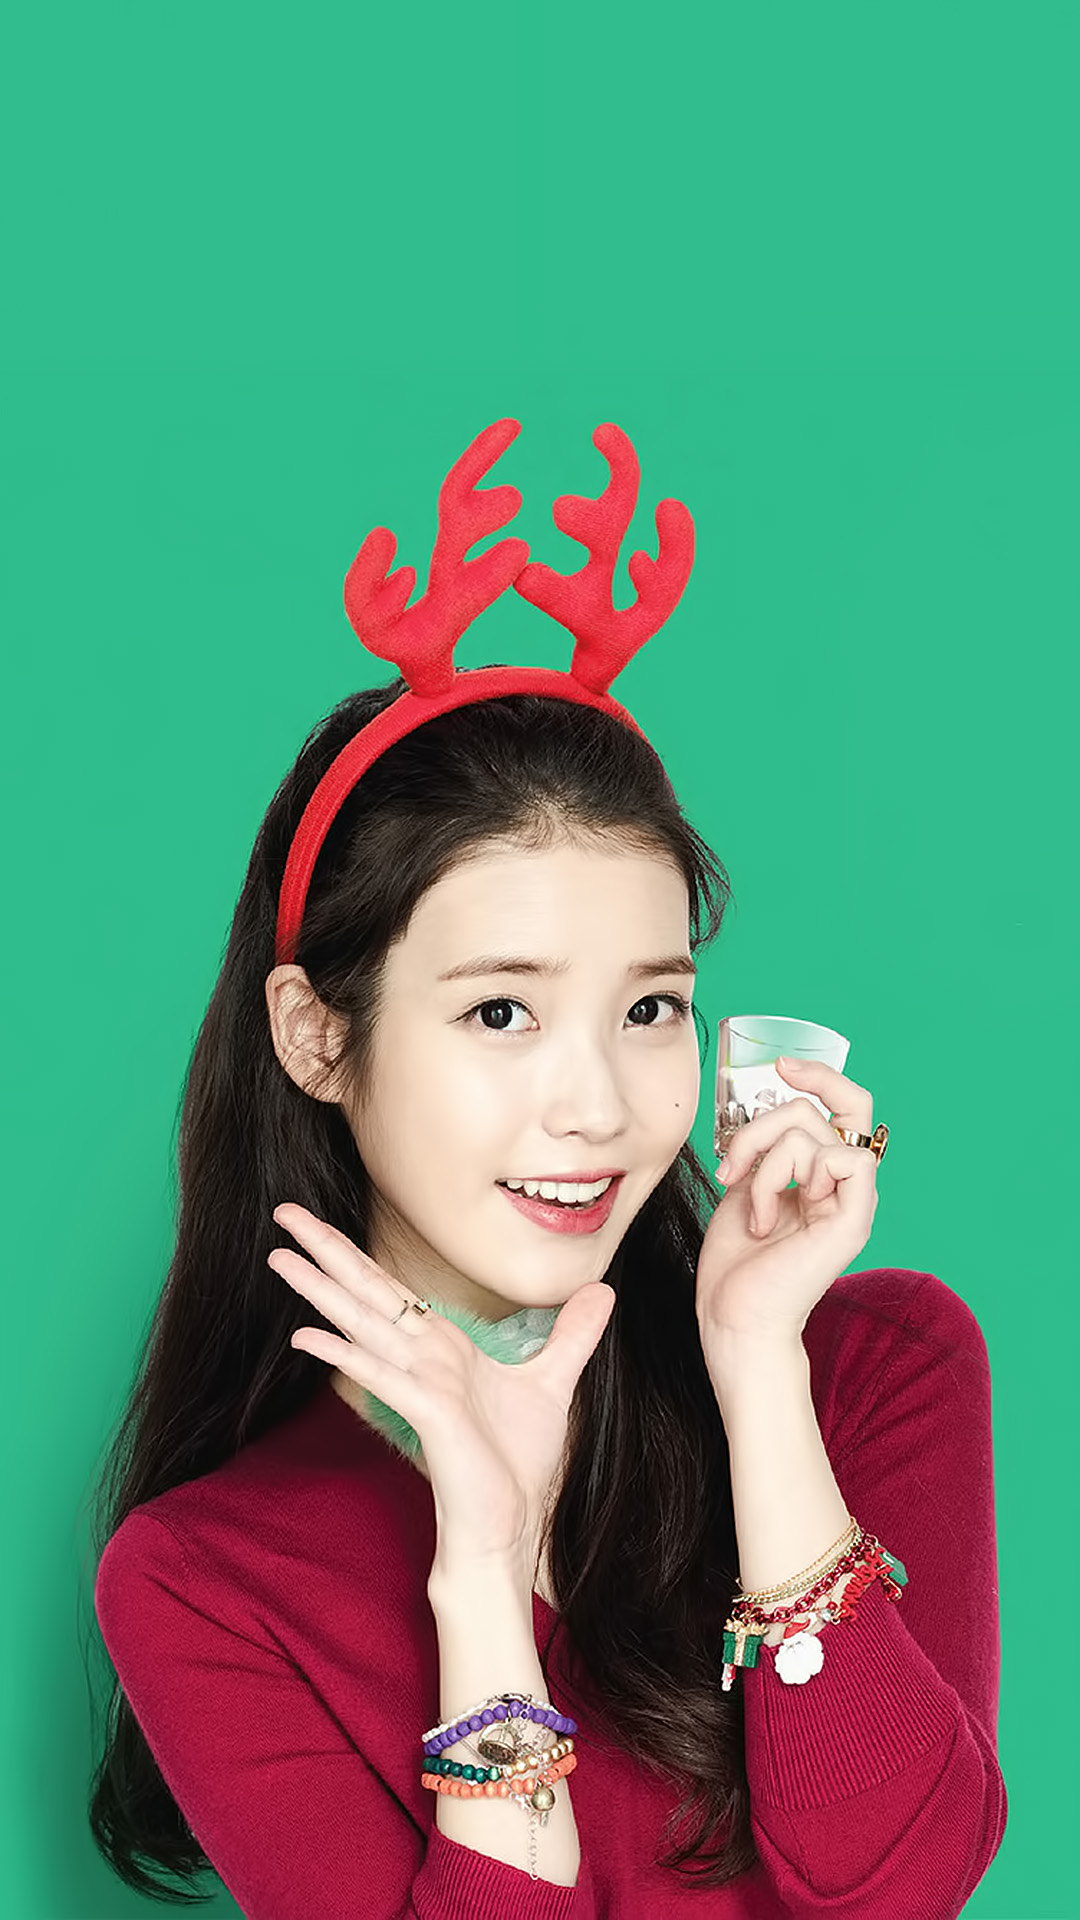 iu wallpaper for chamisul edited by iumushimushi iu